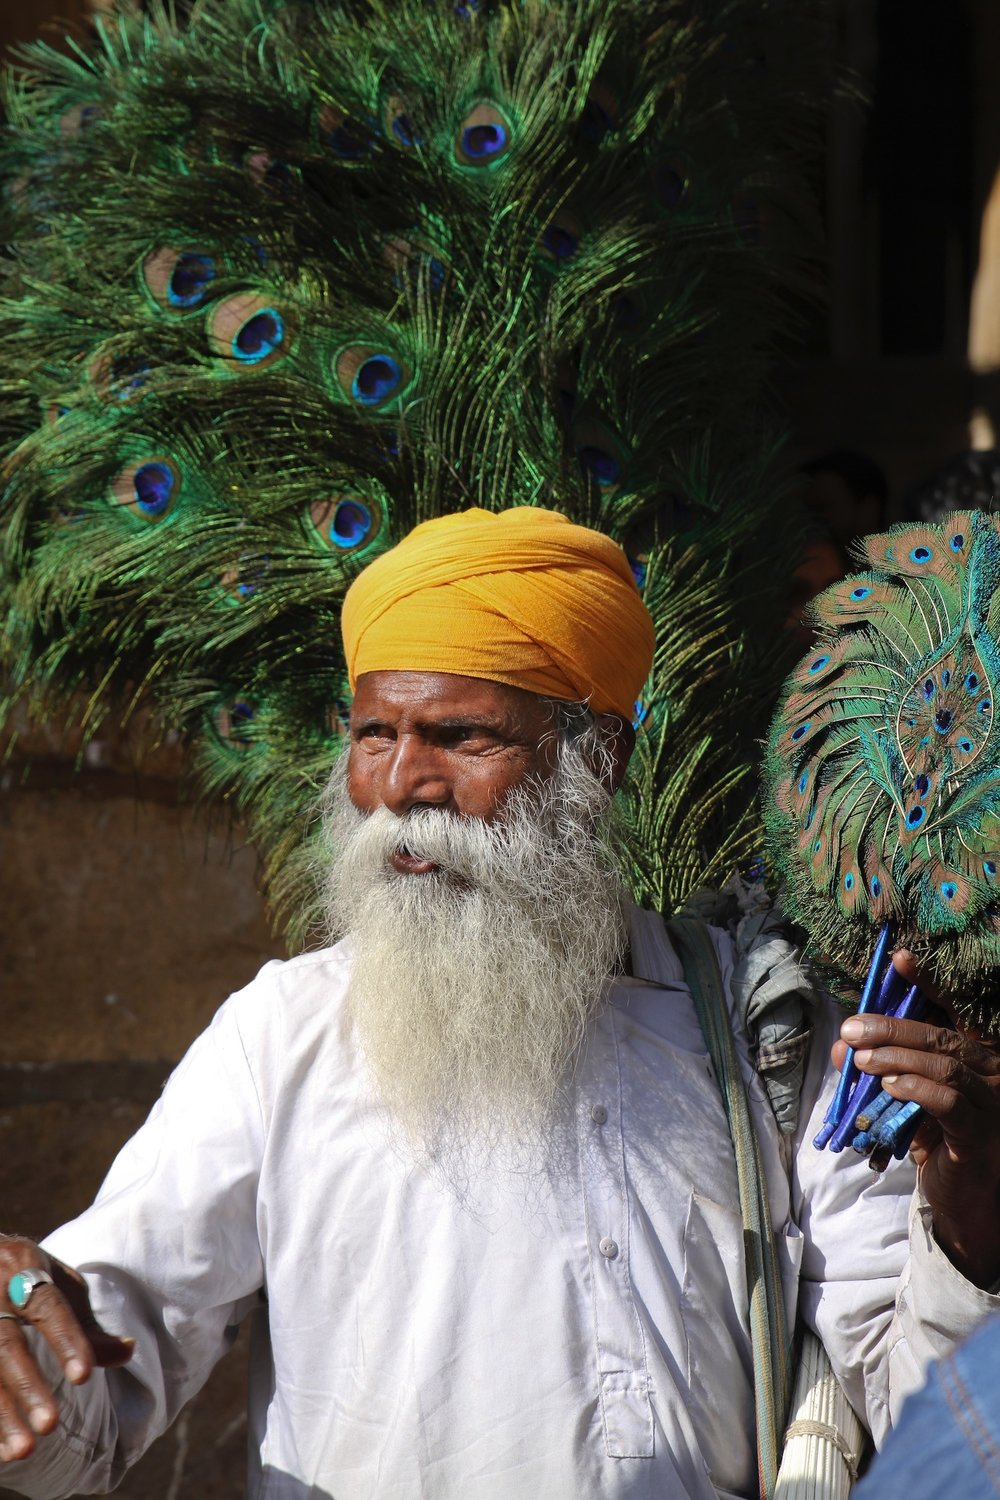 Man with Peacock Feathers